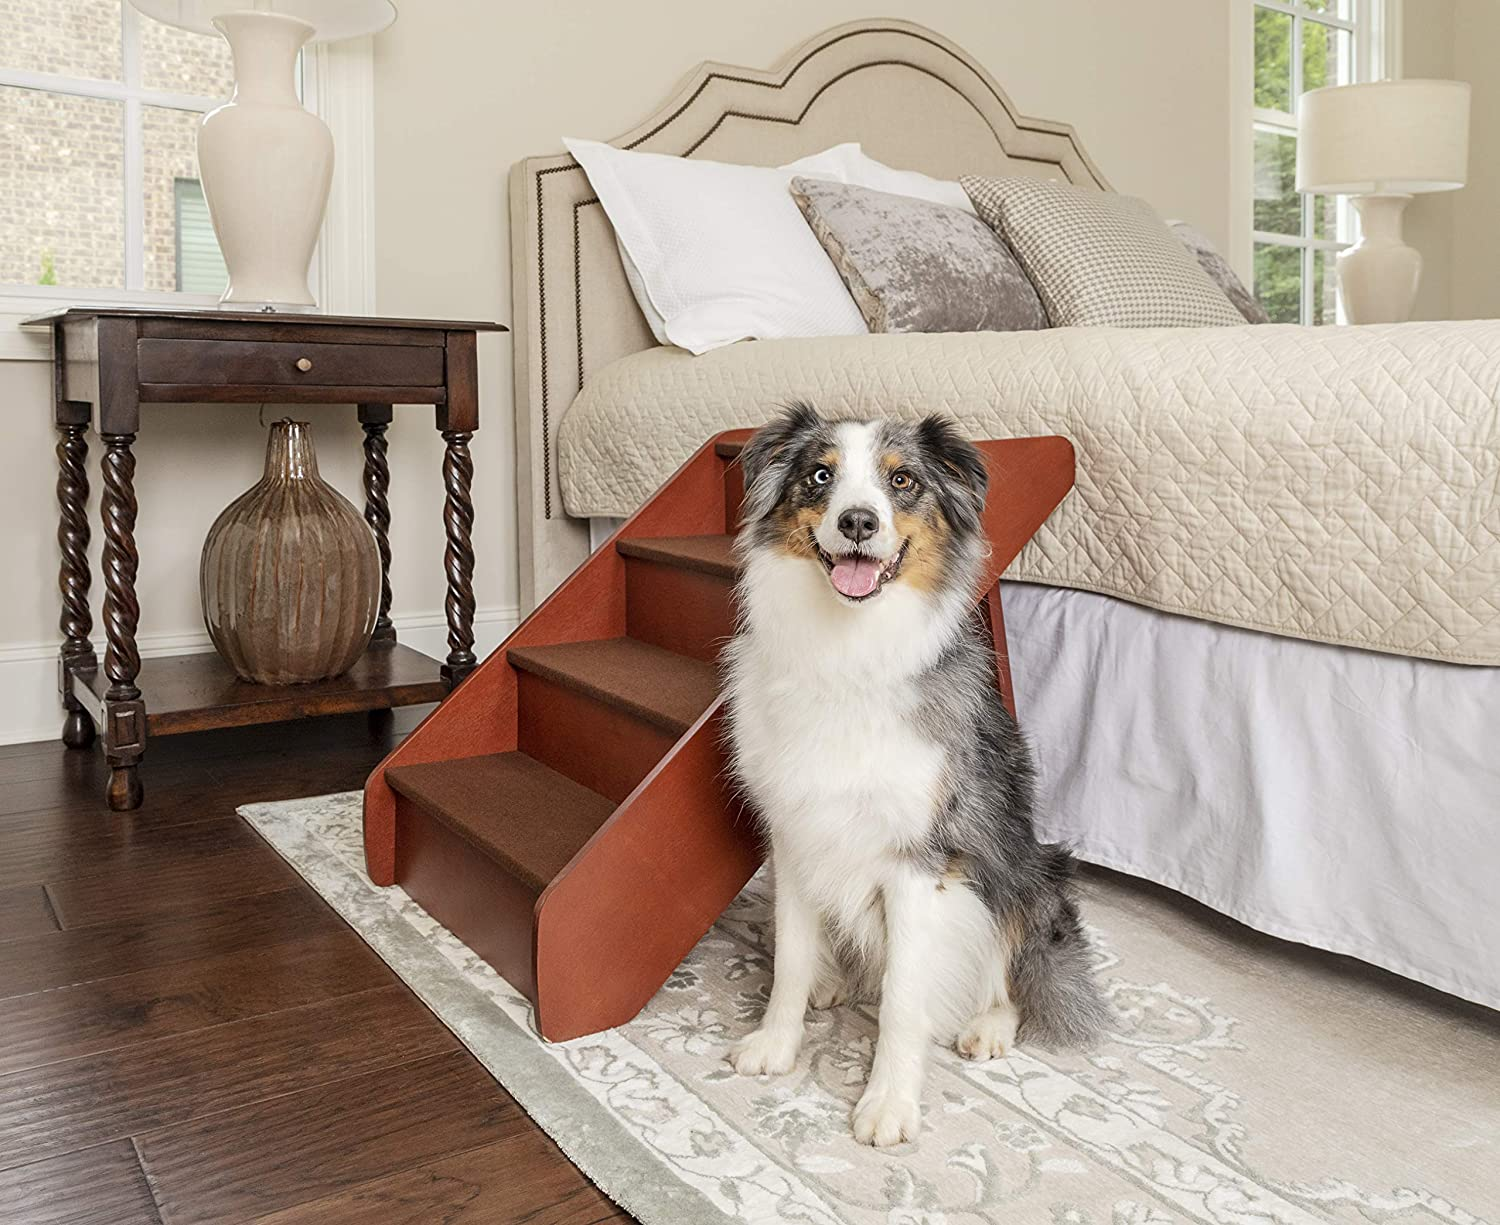 PetSafe Solvit PupSTEP Wood Pet Stairs for Dogs and Cats, Foldable - X-Large : Dog Stairs For High Beds : Pet Supplies